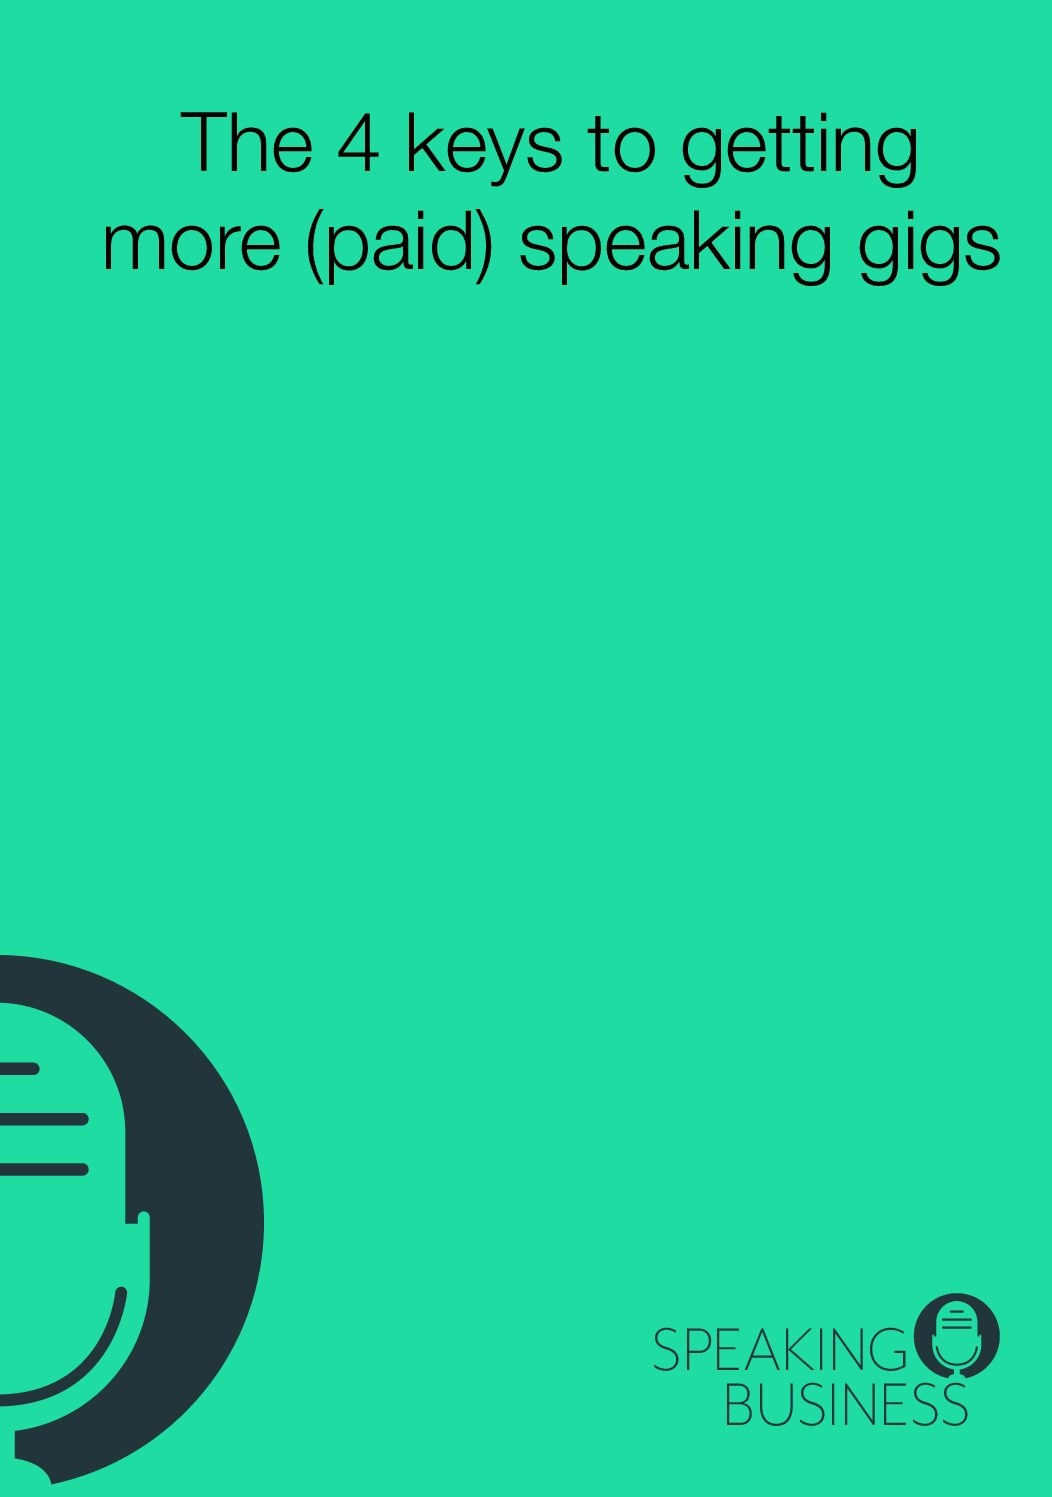 The 4 Keys to getting more (paid) speaking gigs